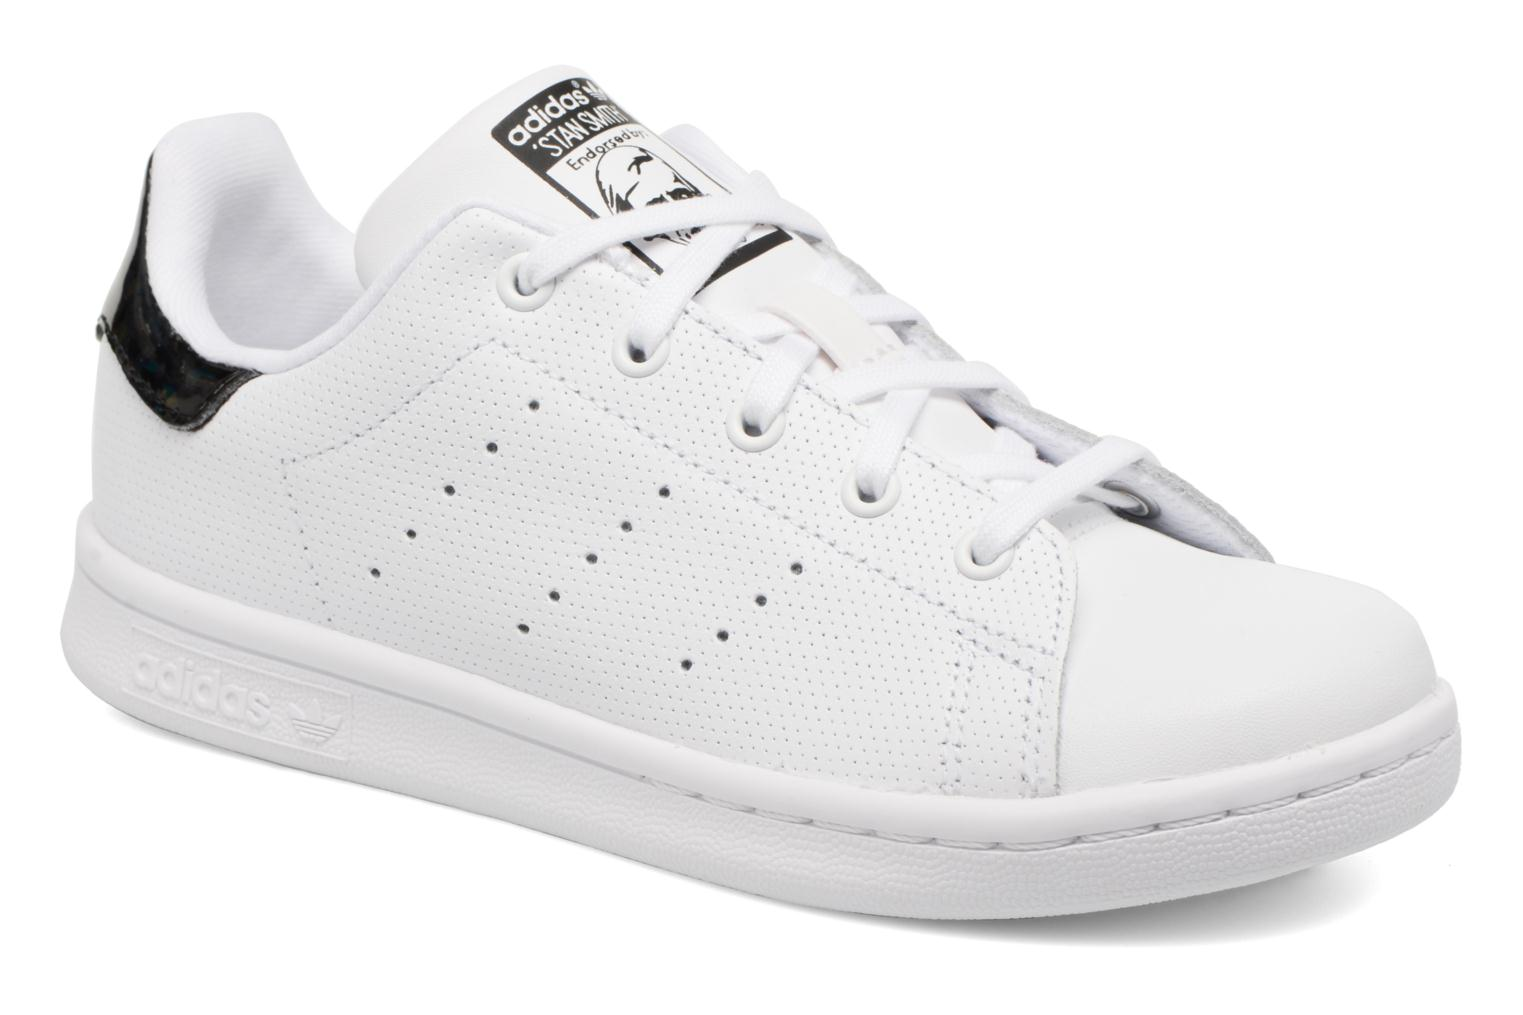 Stan Smith C Ftwbla/Ftwbla/Noiess